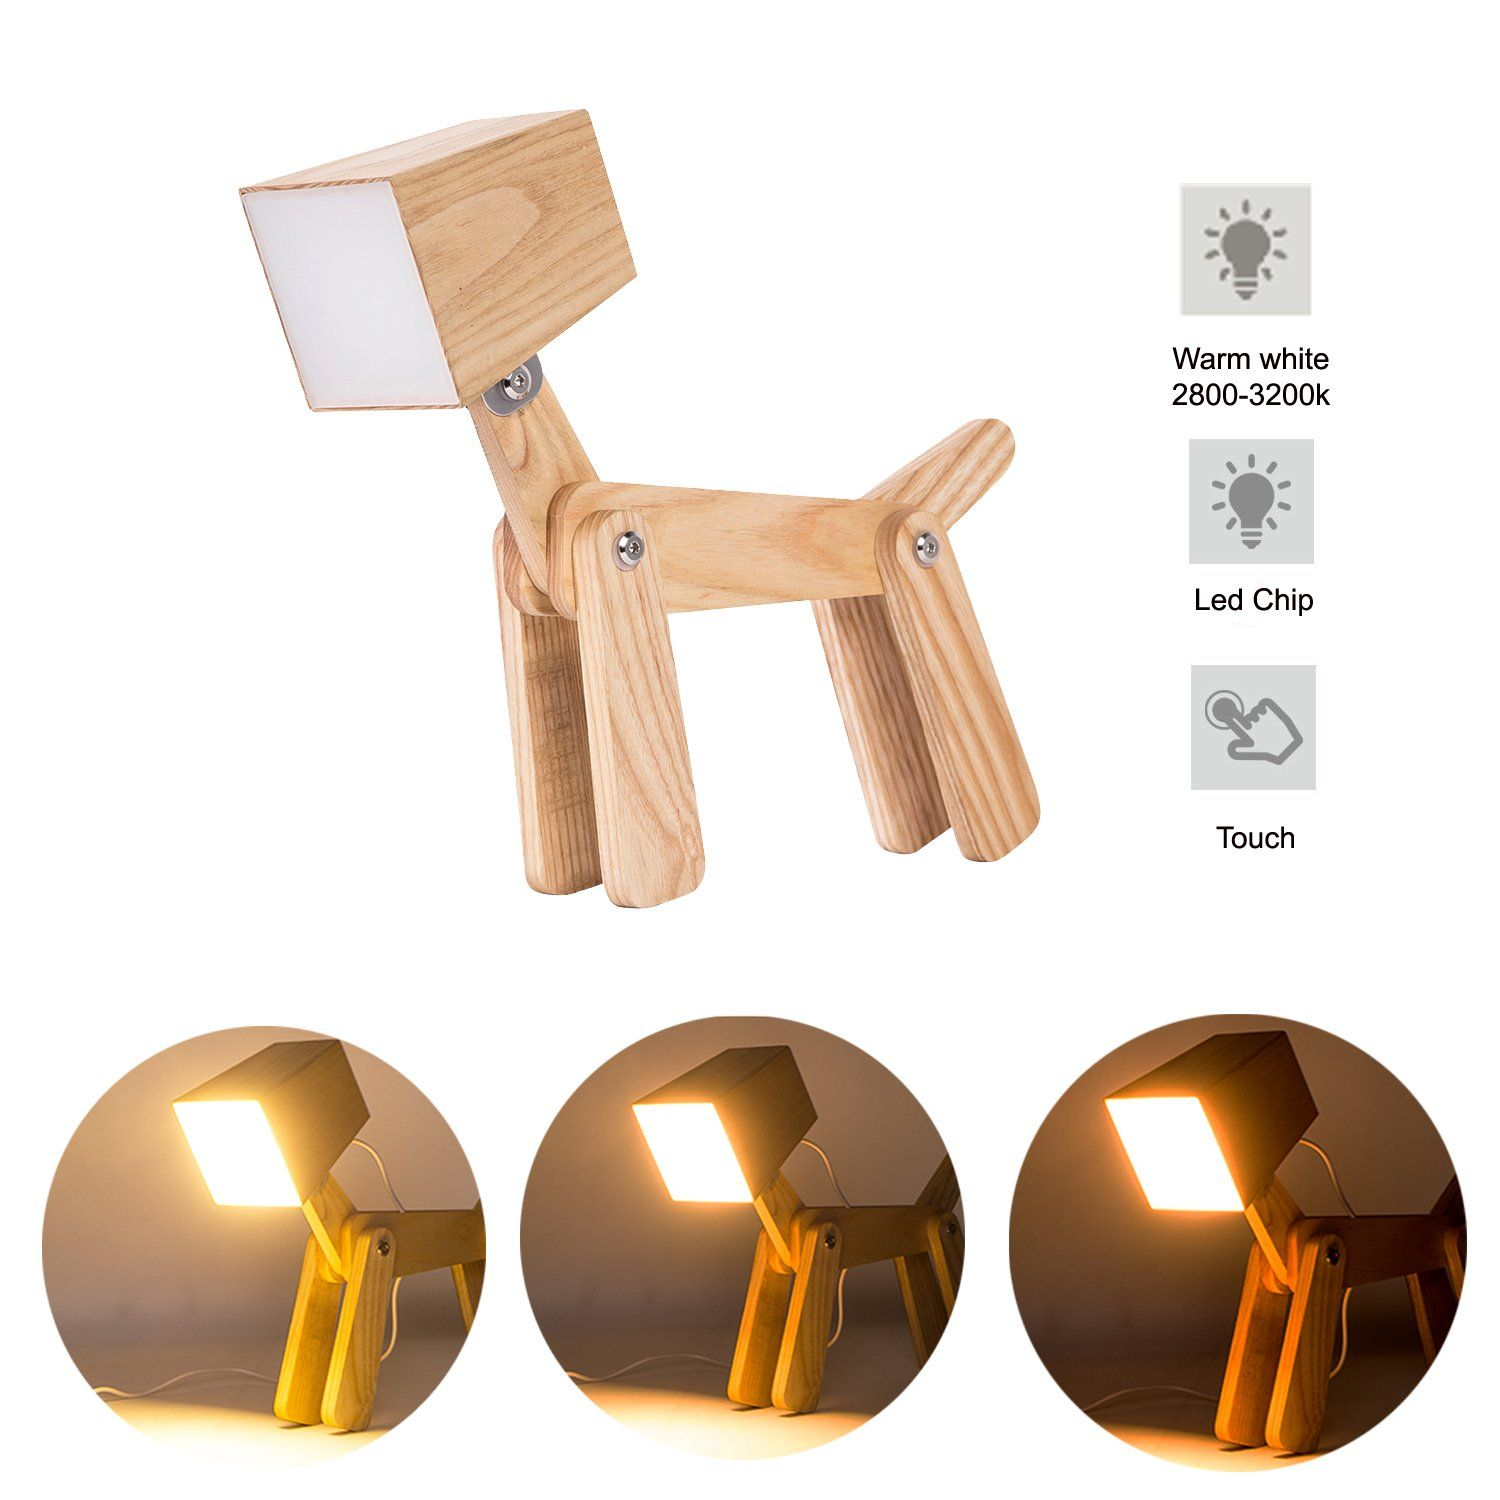 Hroome Modern Cute Dog Adjustable Wooden Dimmable Beside Desk Table Lamp Touch Sensor With Night Light For Bedroom Dog Lamp Wooden Table Lamps Table Lamp Wood